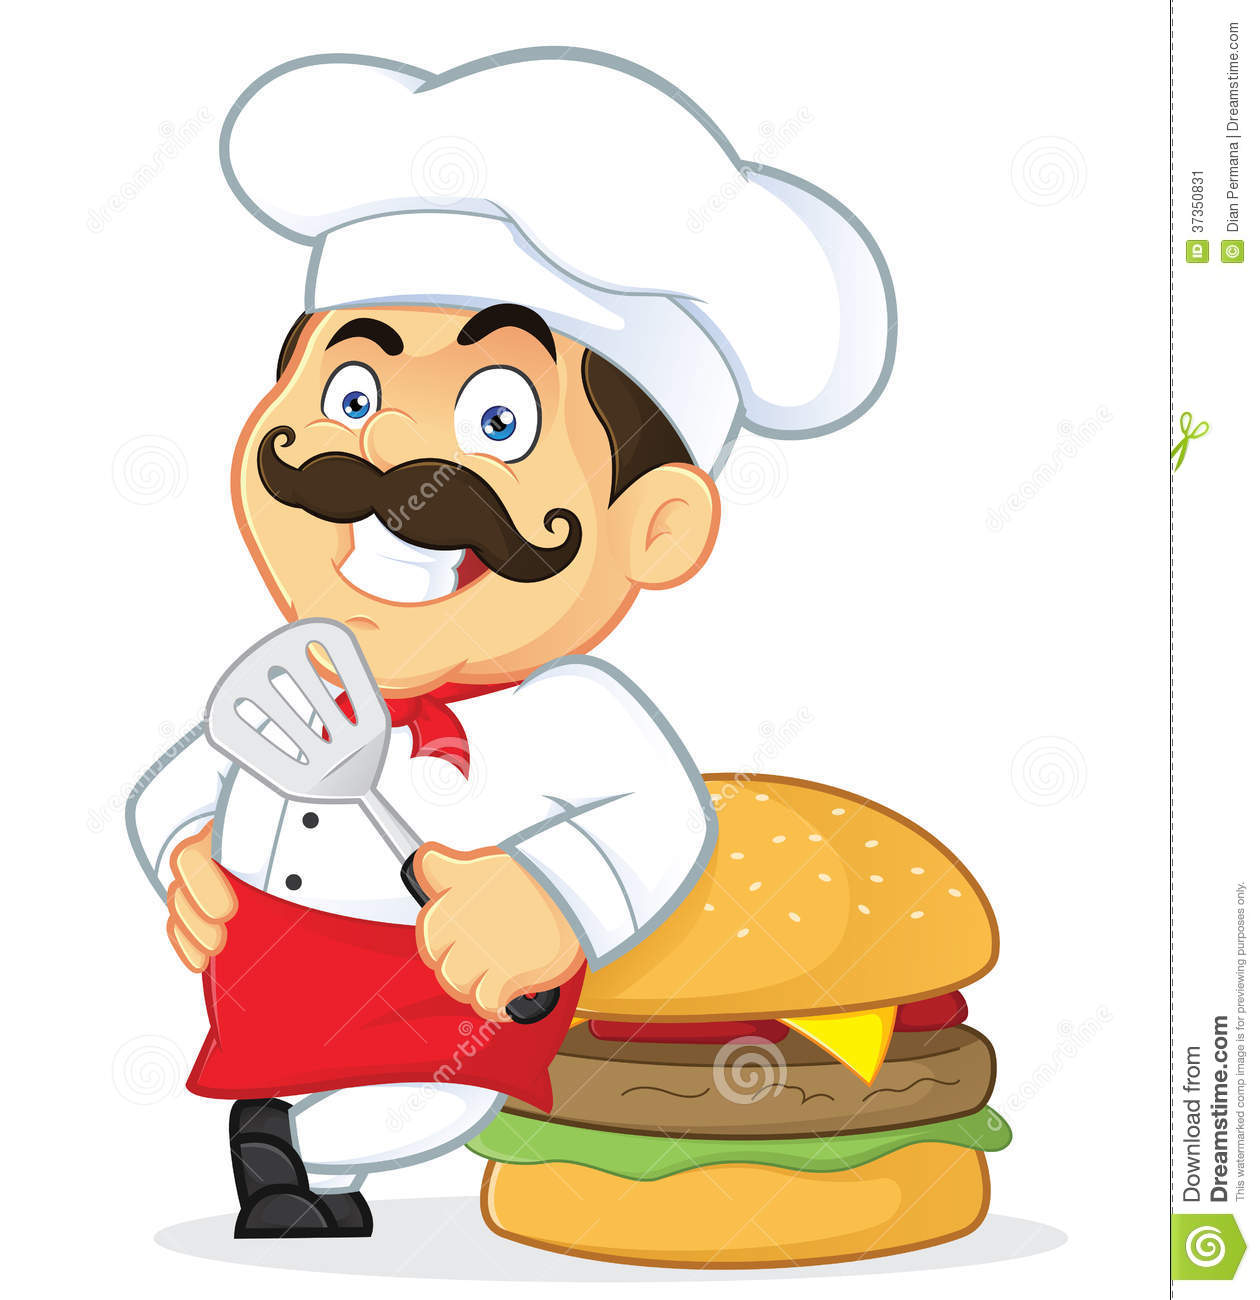 Chef with Giant Burger. Clipart Picture of a Chef Cartoon Character with  Giant Burger royalty 4317b97b5aee